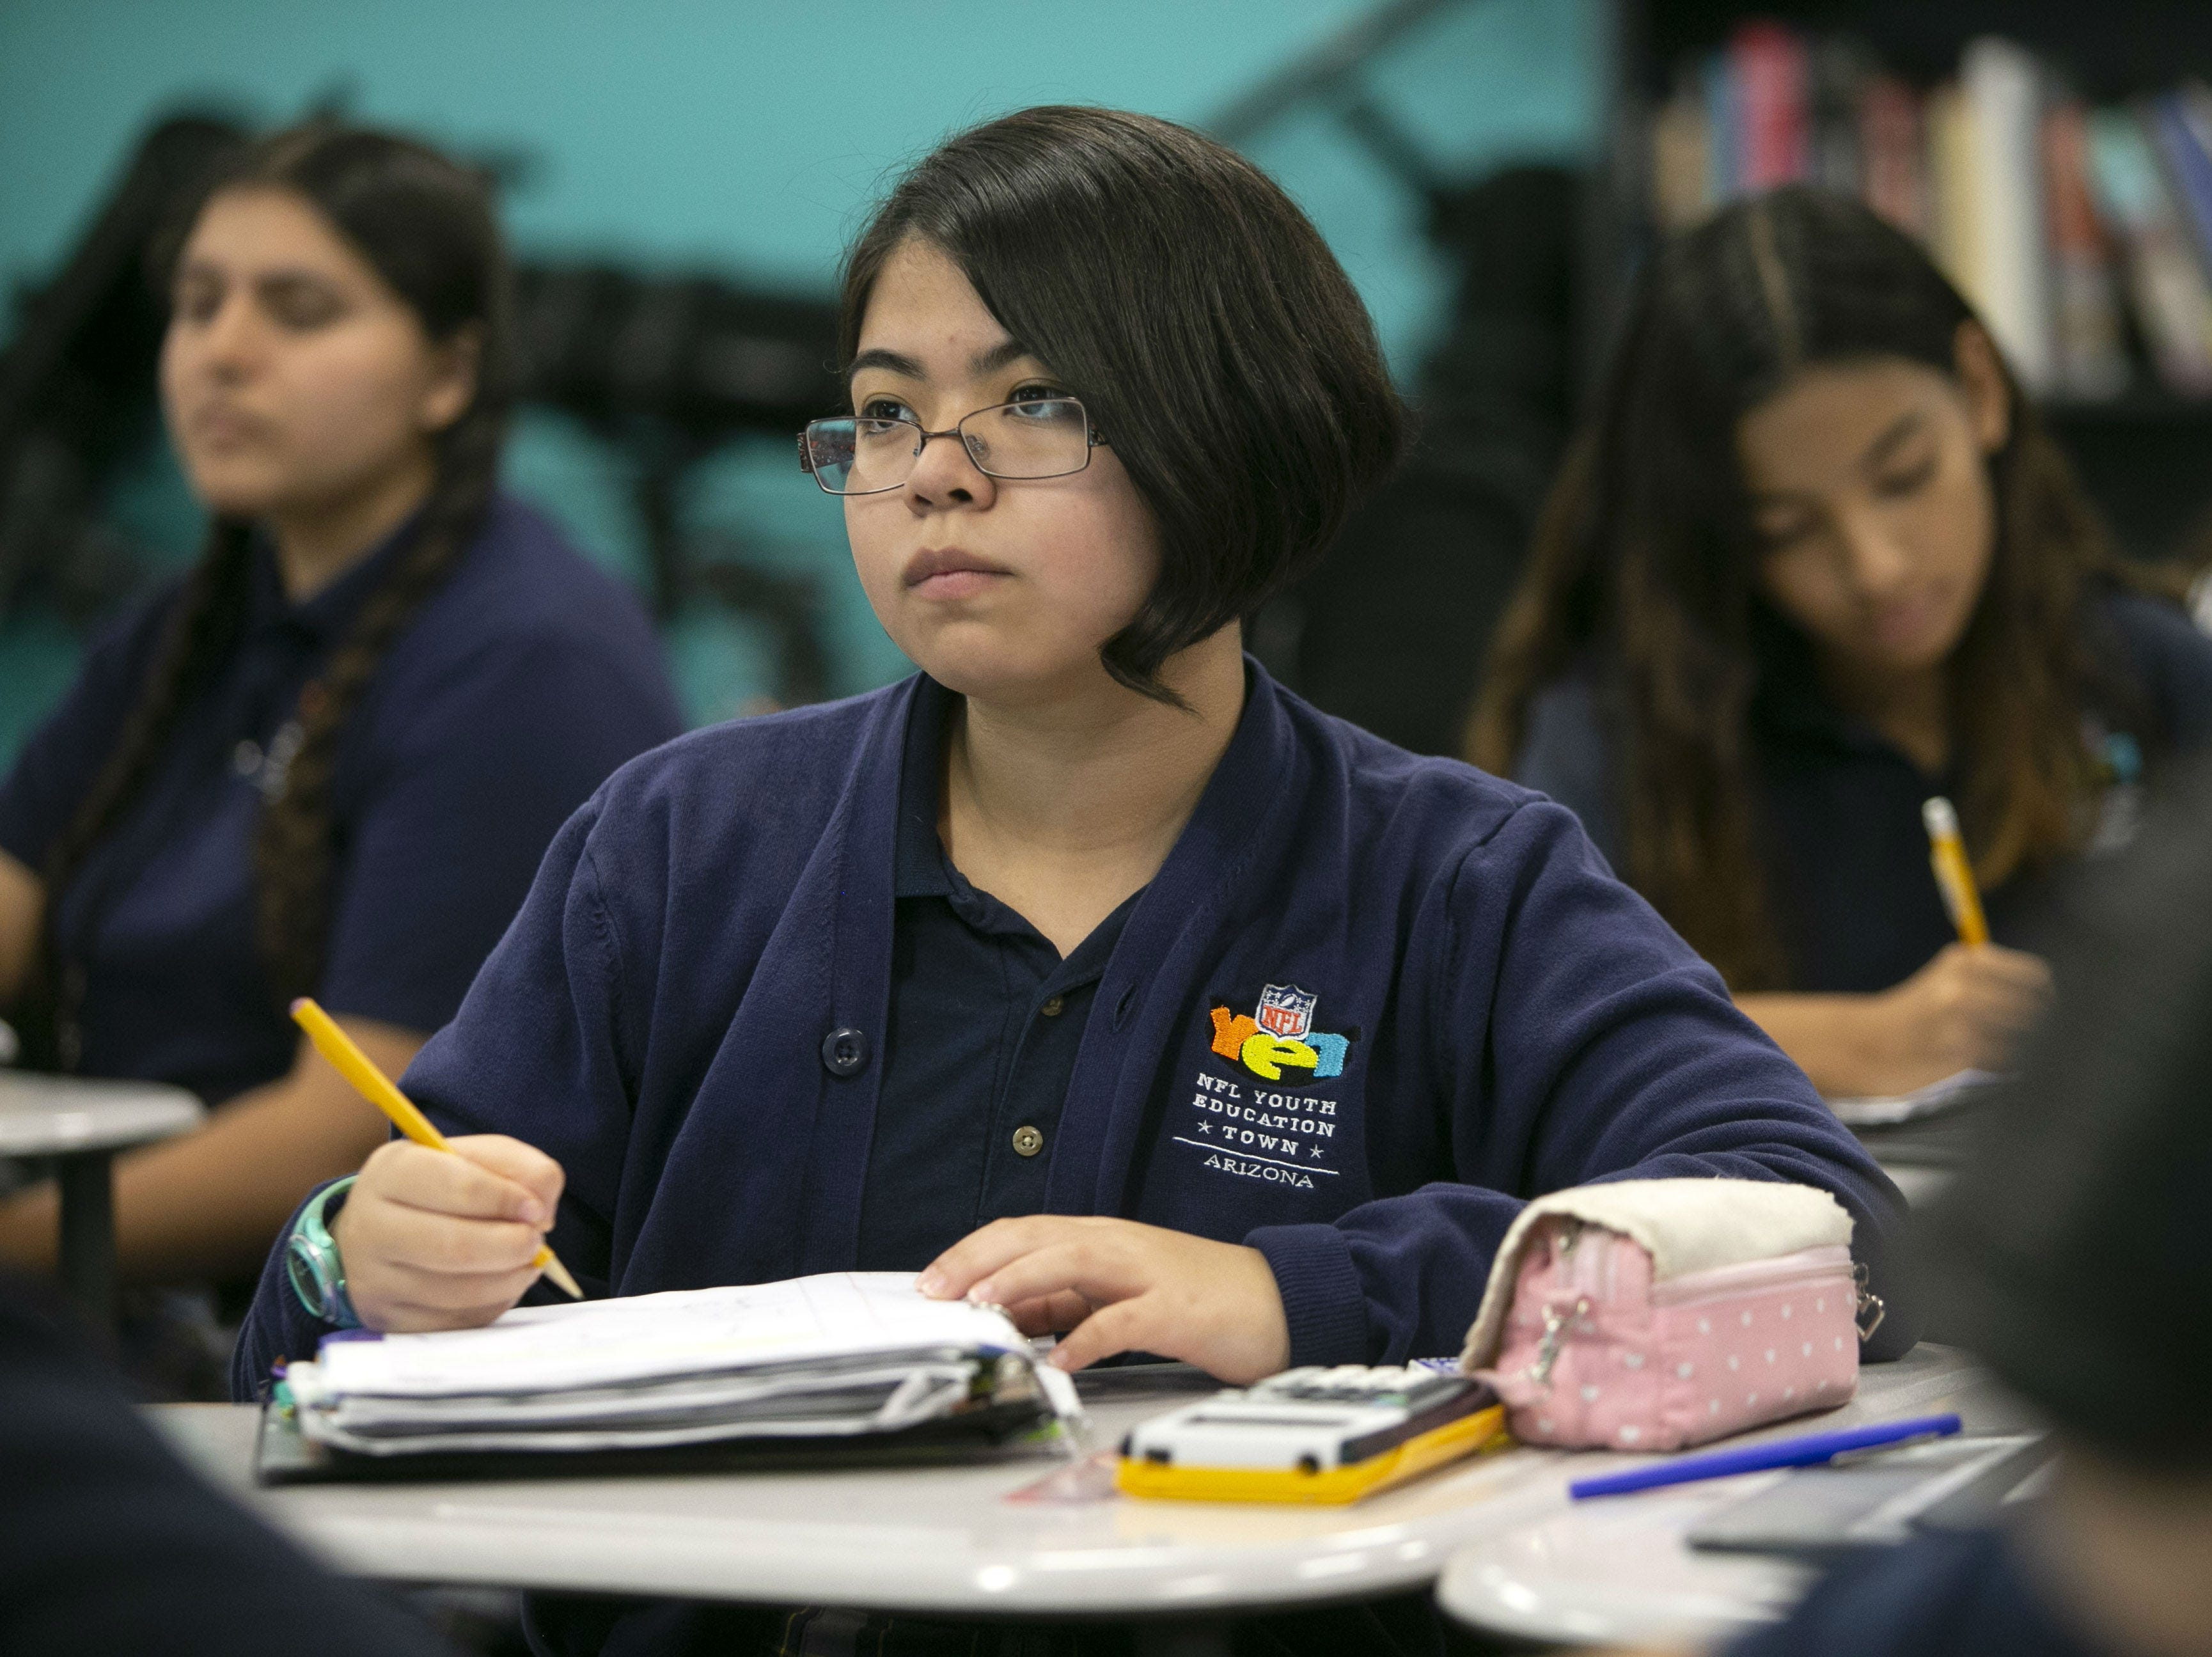 Isabel Huerta, 16, listens during a physics class at the NFL YET College Prep Academy, a seventh-12th grade charter school in south Phoenix, on Nov. 5, 2018.